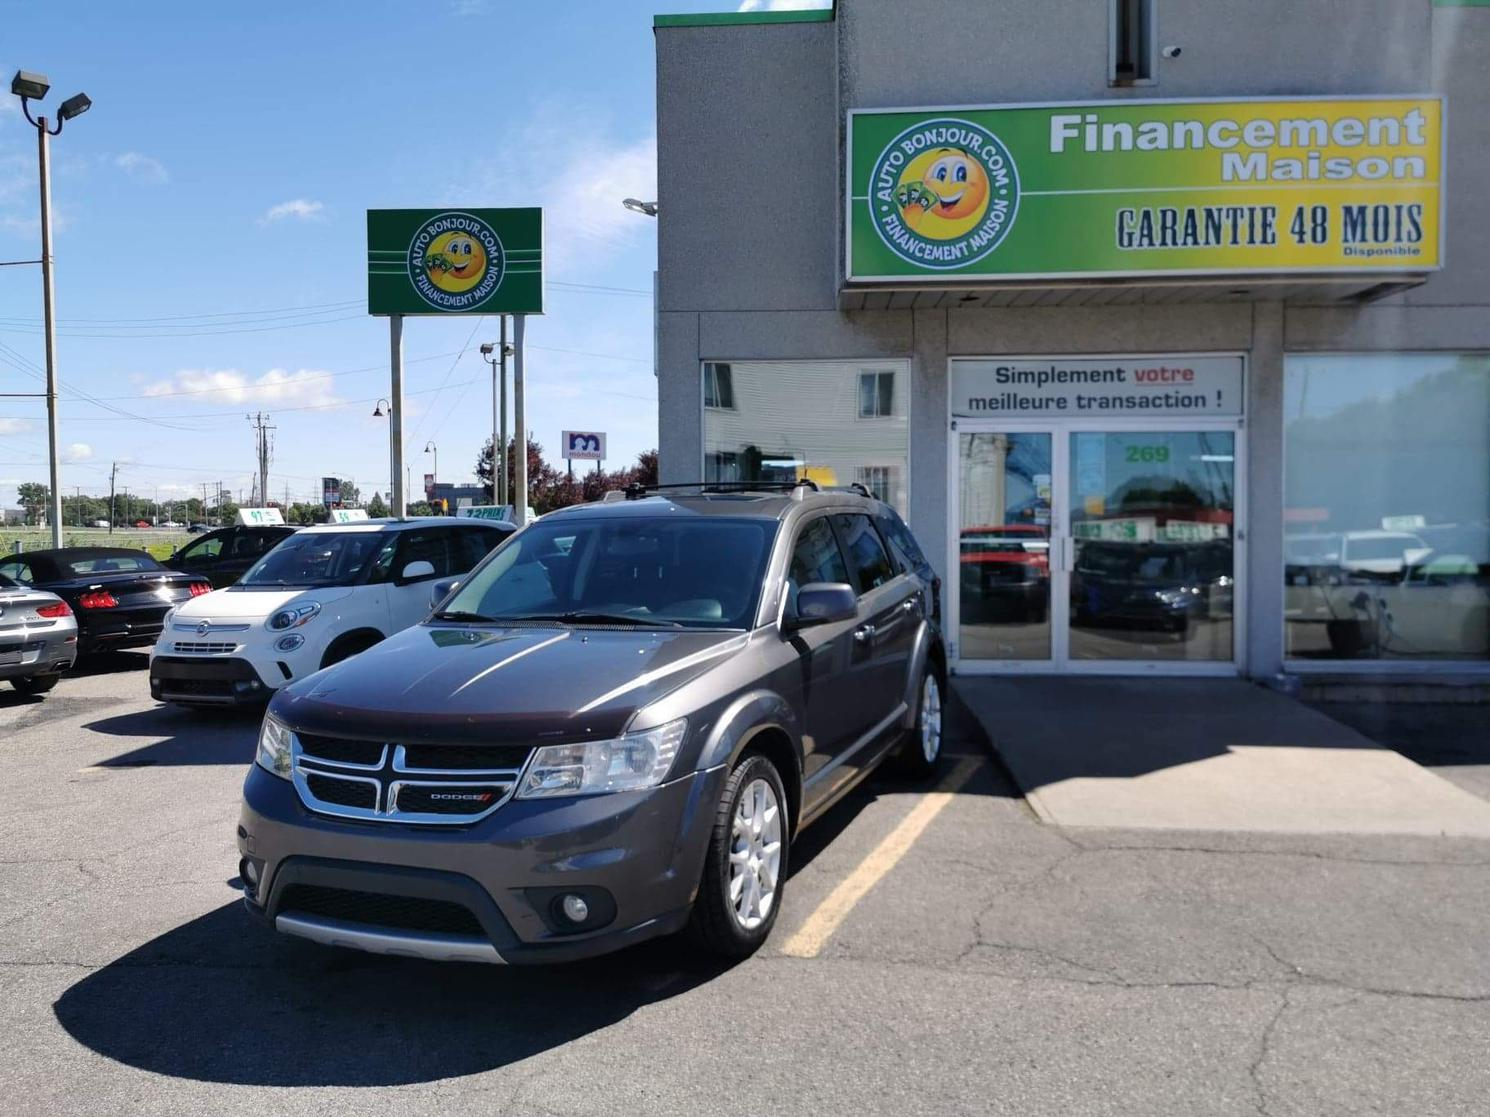 2014 Dodge Journey awd R/T $ 63/sem *DVD* 7 passagers #20-018